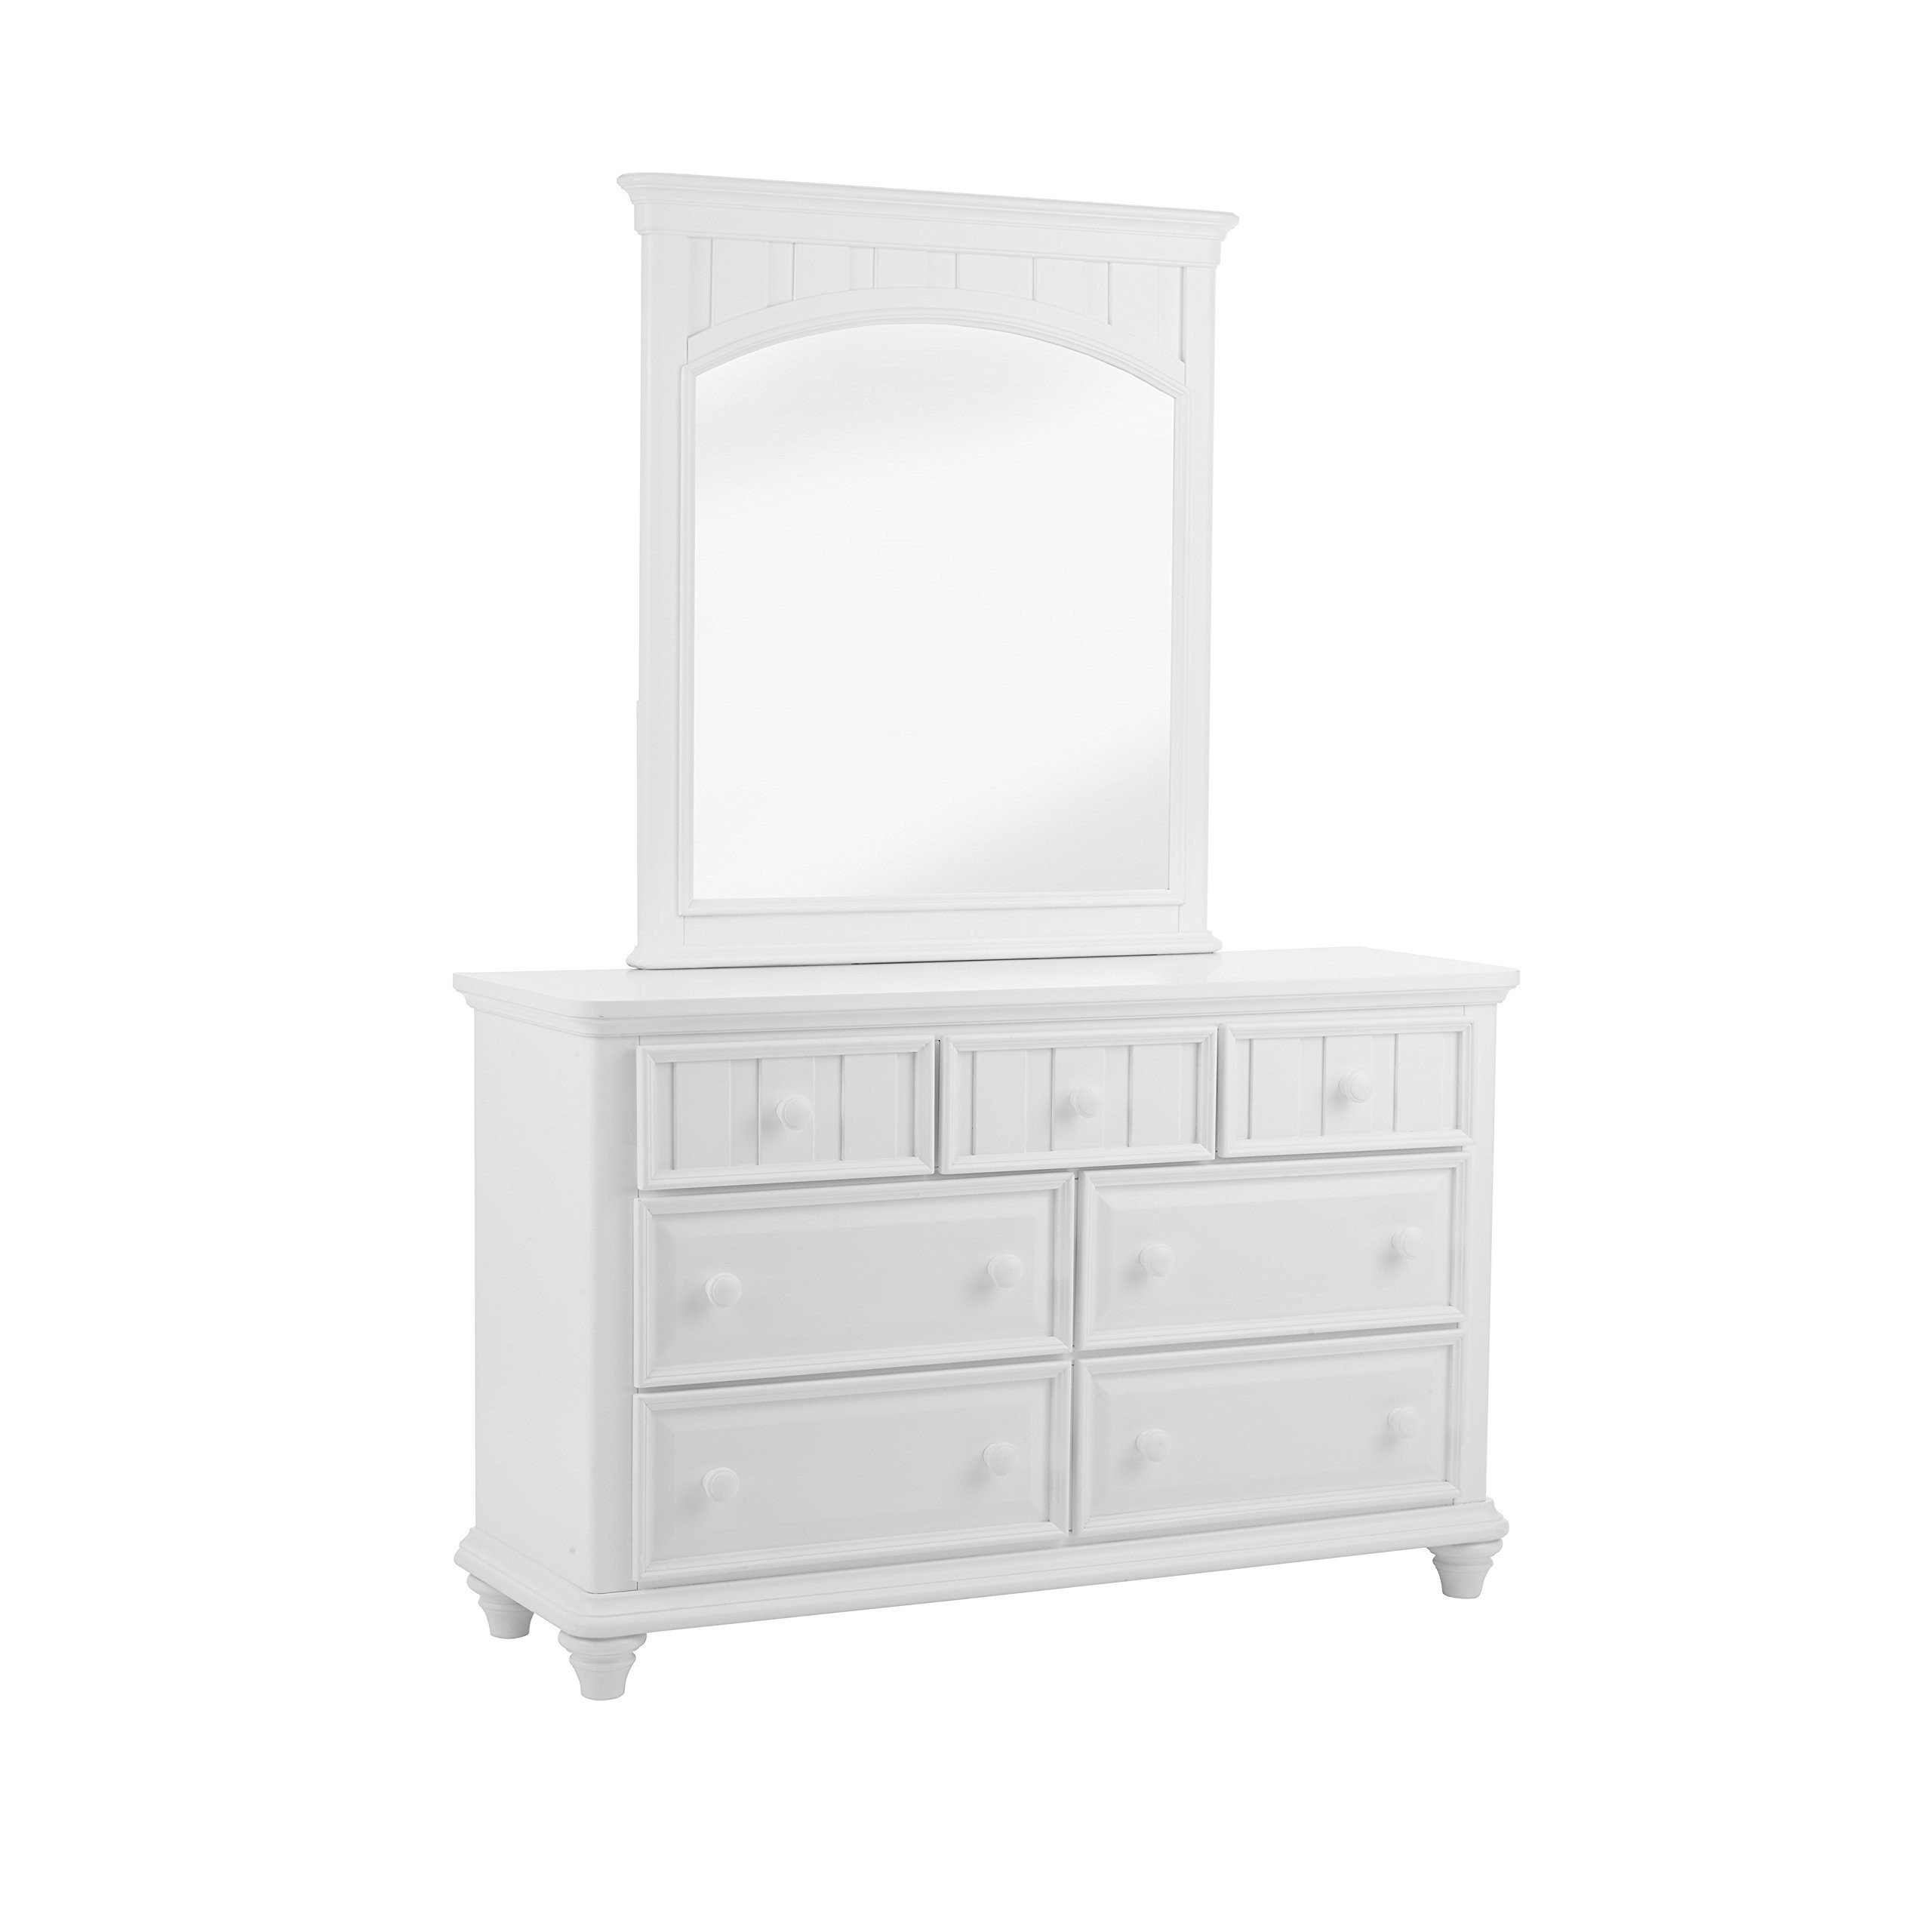 Dresser for Small Bedroom Inspirational Unique Bunk Bed Sets with Dresser — Beautiful